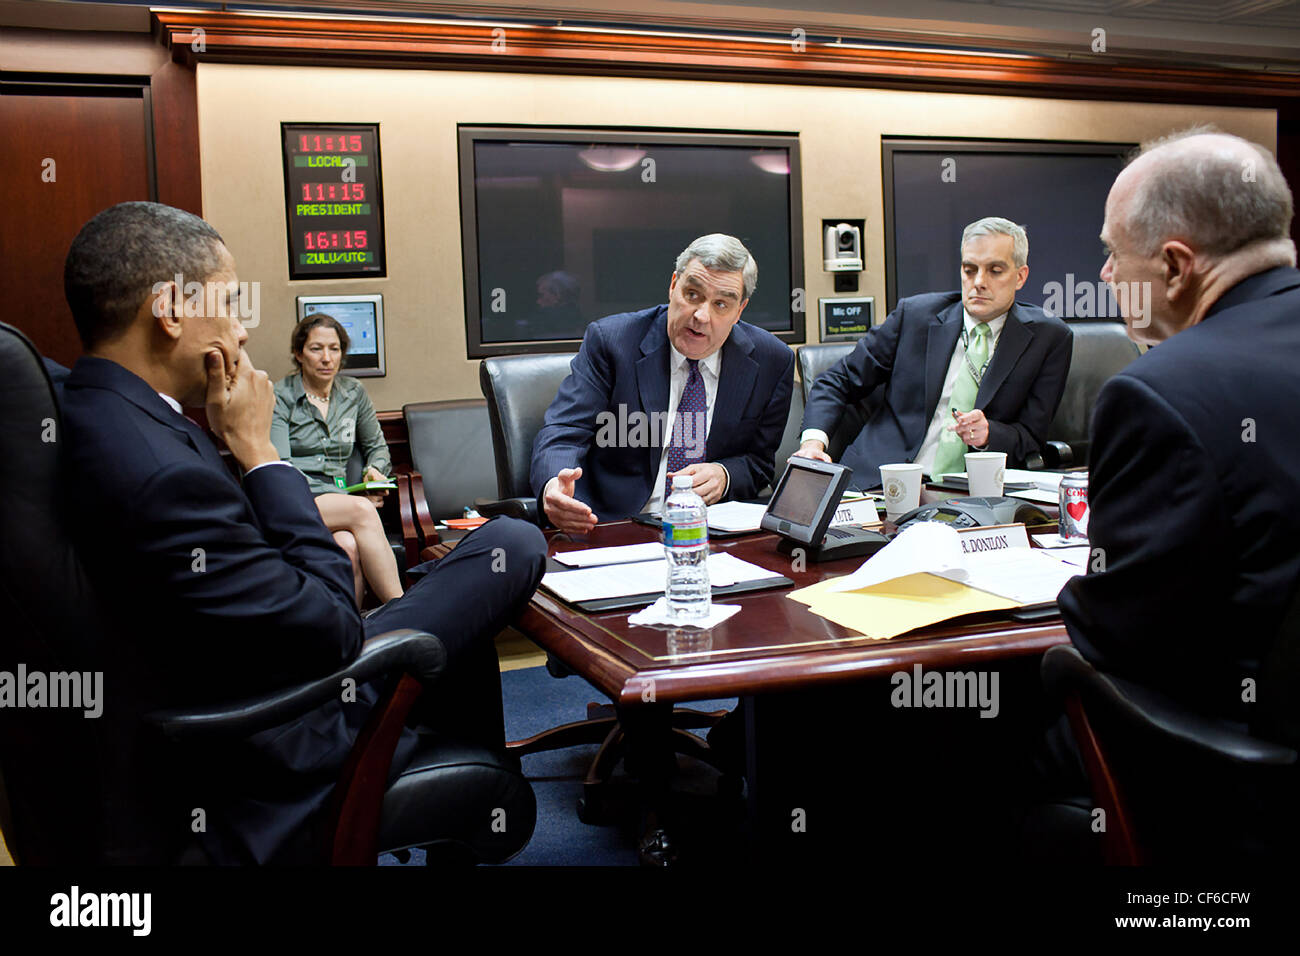 President Barack Obama is briefed by Lt. Gen. Doug Lute, Special Assistant to the President for Afghanistan and - Stock Image